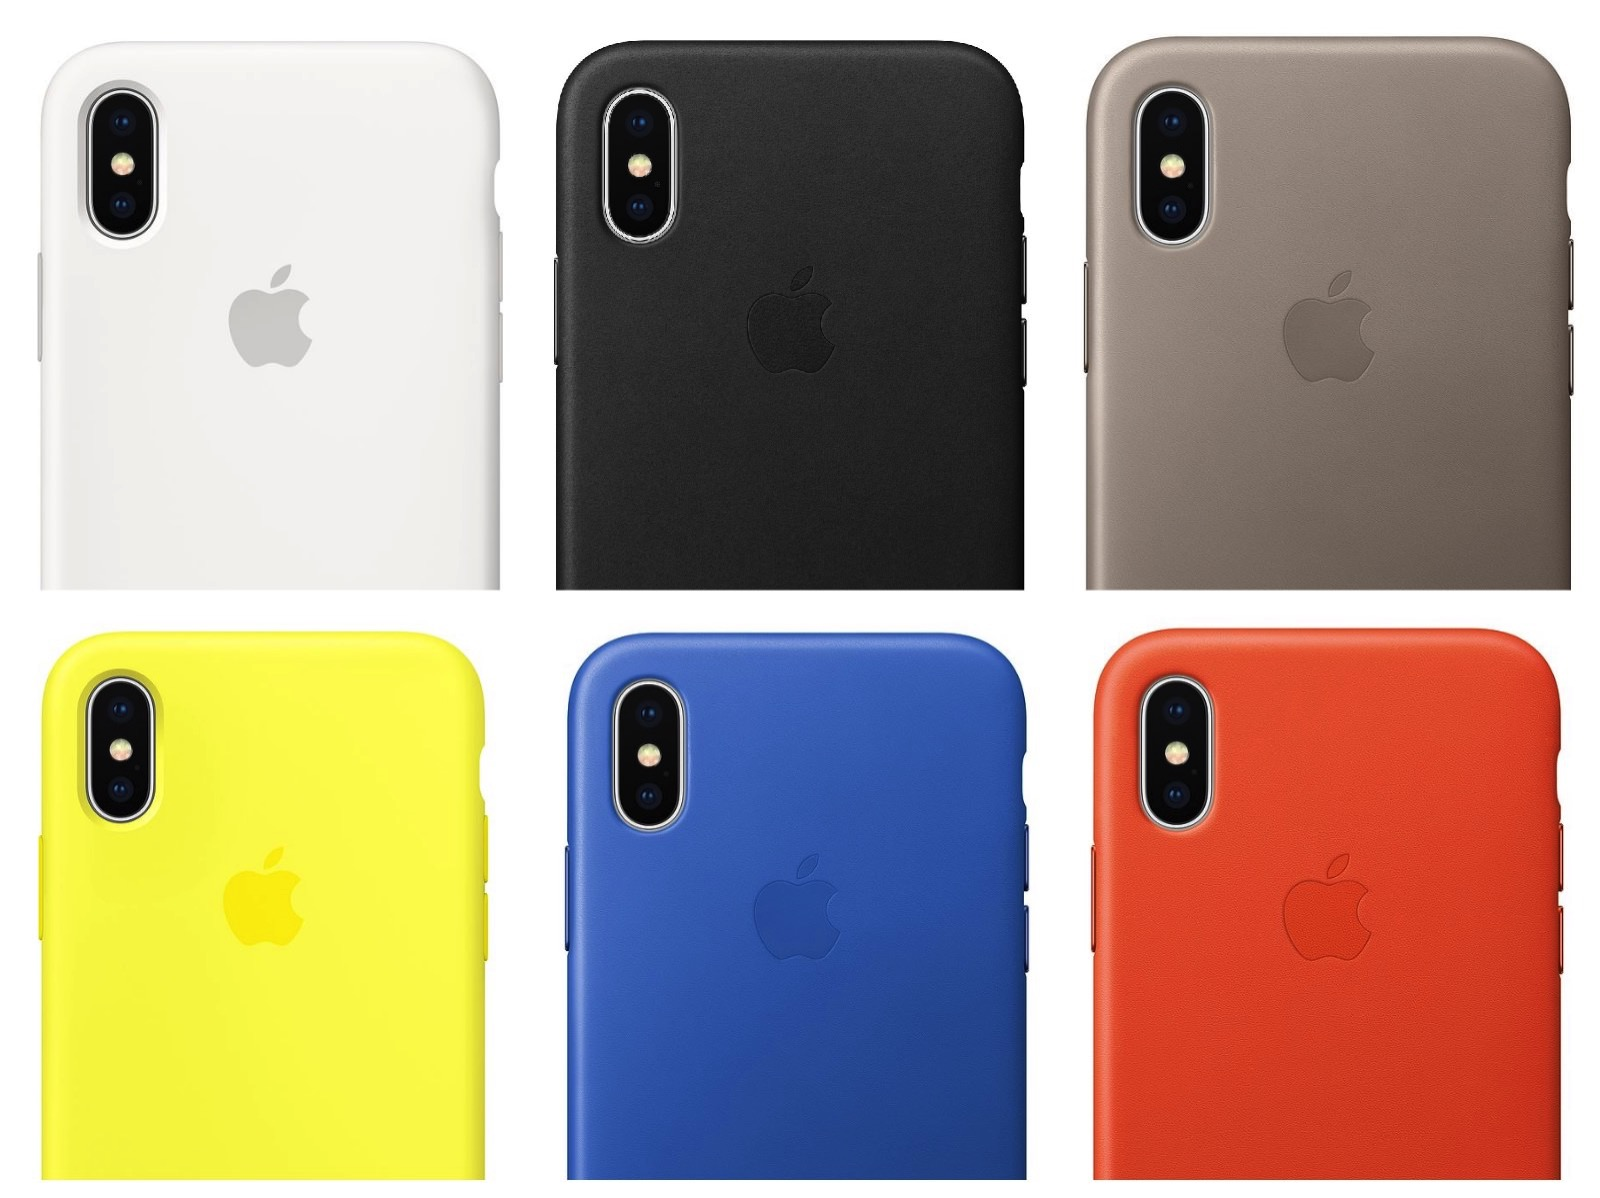 6.1 iphone colors